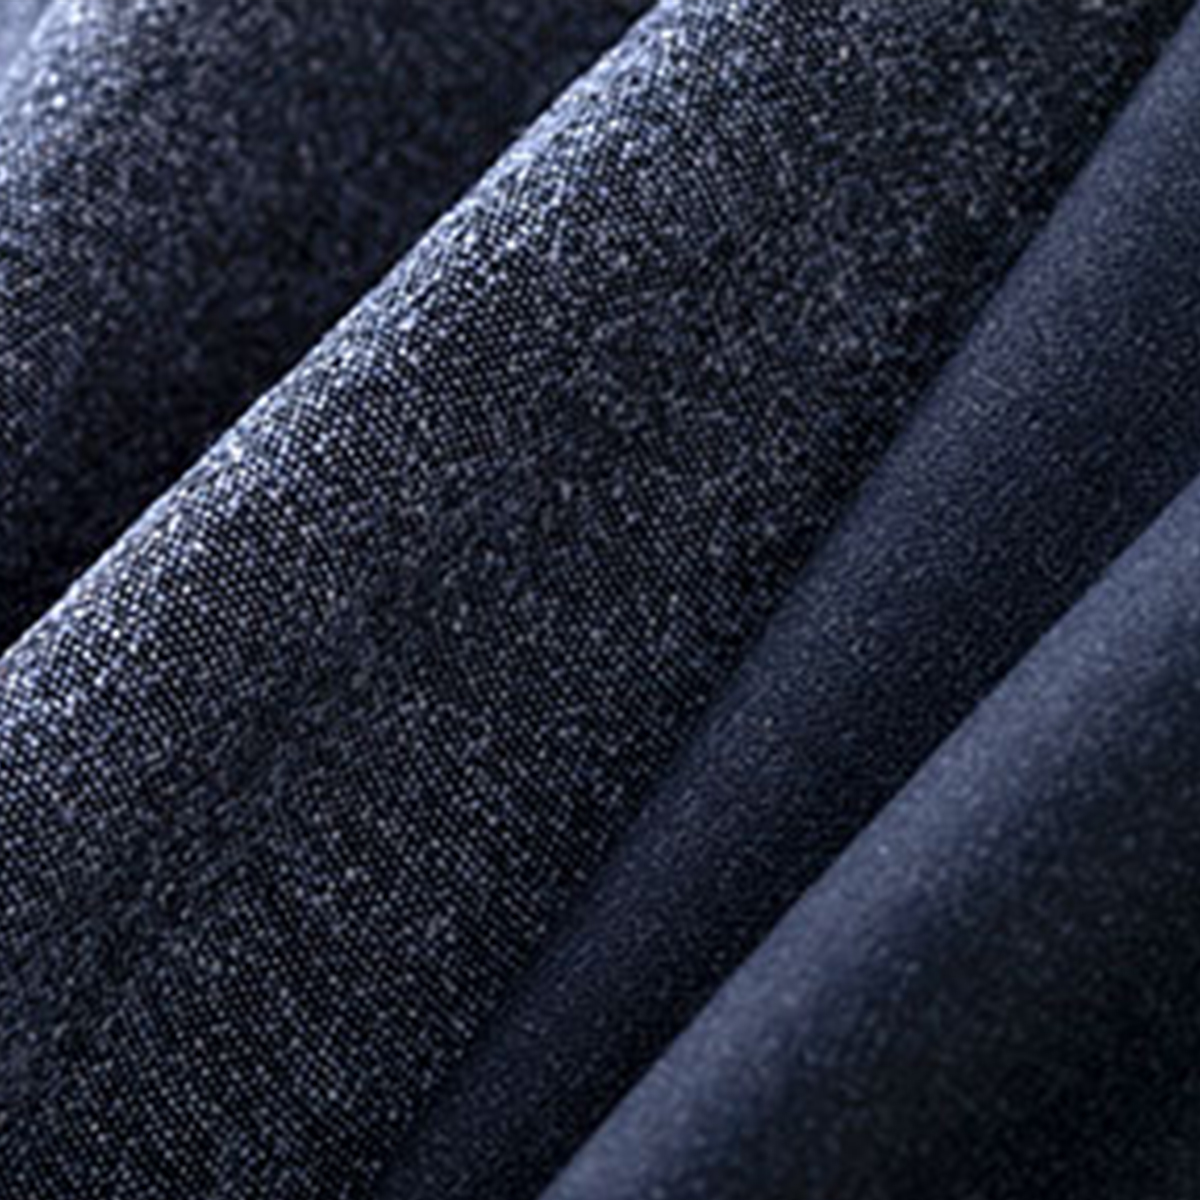 Navy Blue Woven Textile by LARUSMIANI by Clerici Tessuto